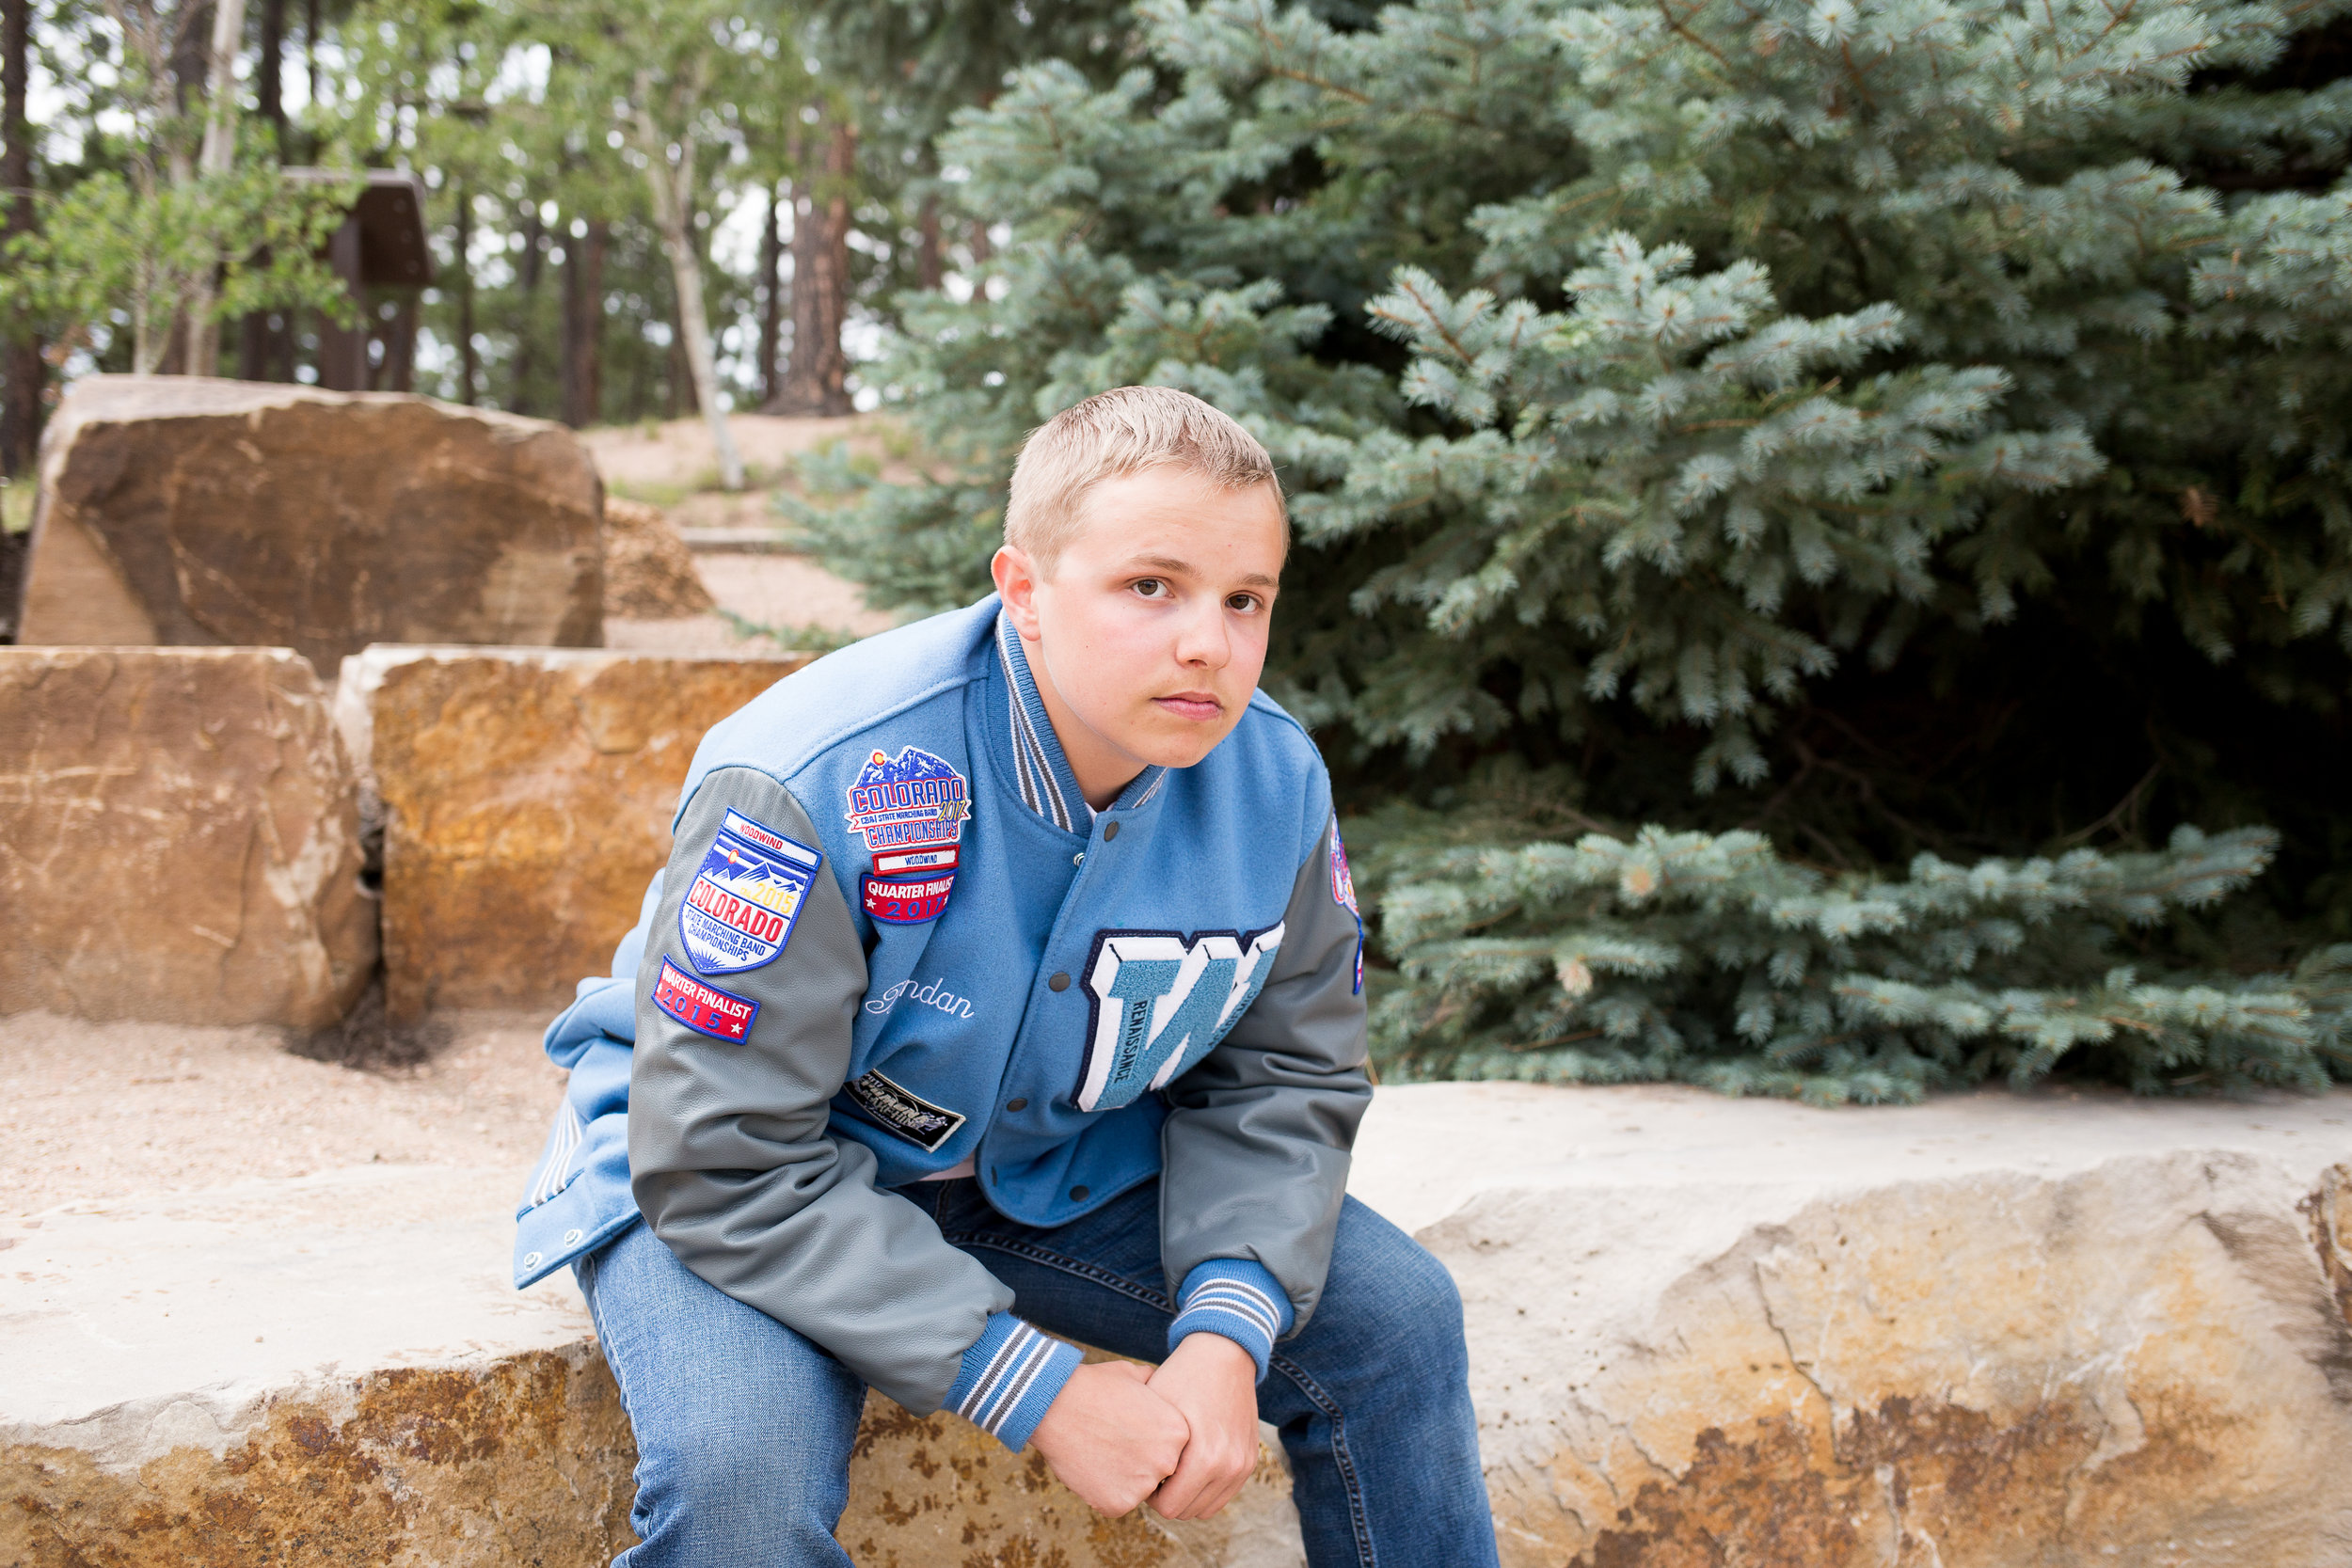 Colorado Springs Senior Photography | Stacy Carosa Photography | Colorado Springs senior photographer | senior session at Fox Run Park | Widefield high school senior varisty jacket band